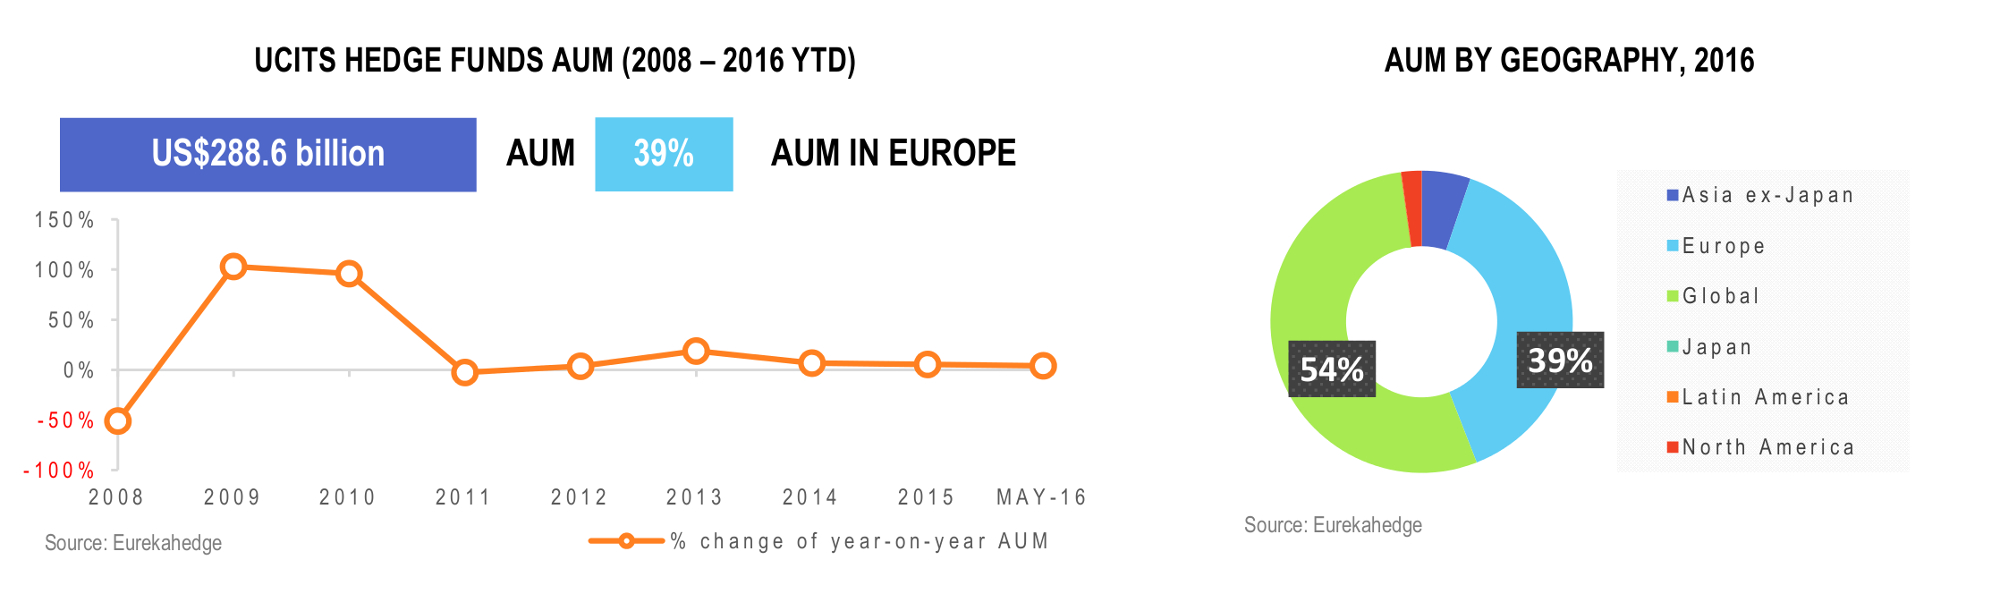 UCITS Hedge Funds Infographic July 2016 - Total regional AUM and number of funds